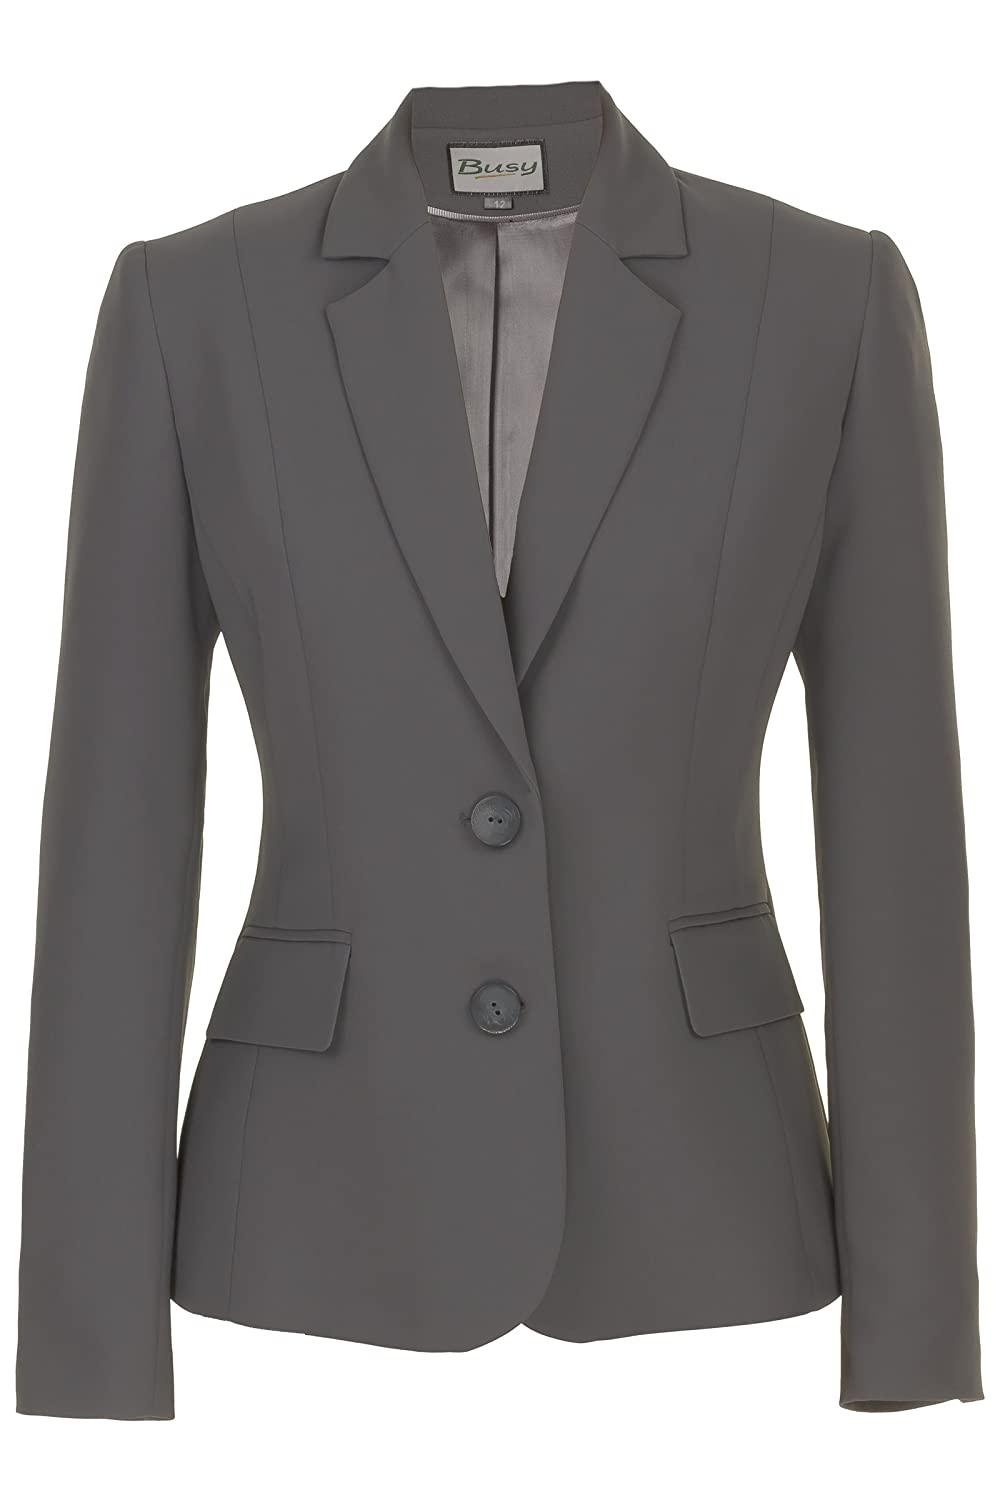 Busy Clothing Womens Grey Suit Jacket